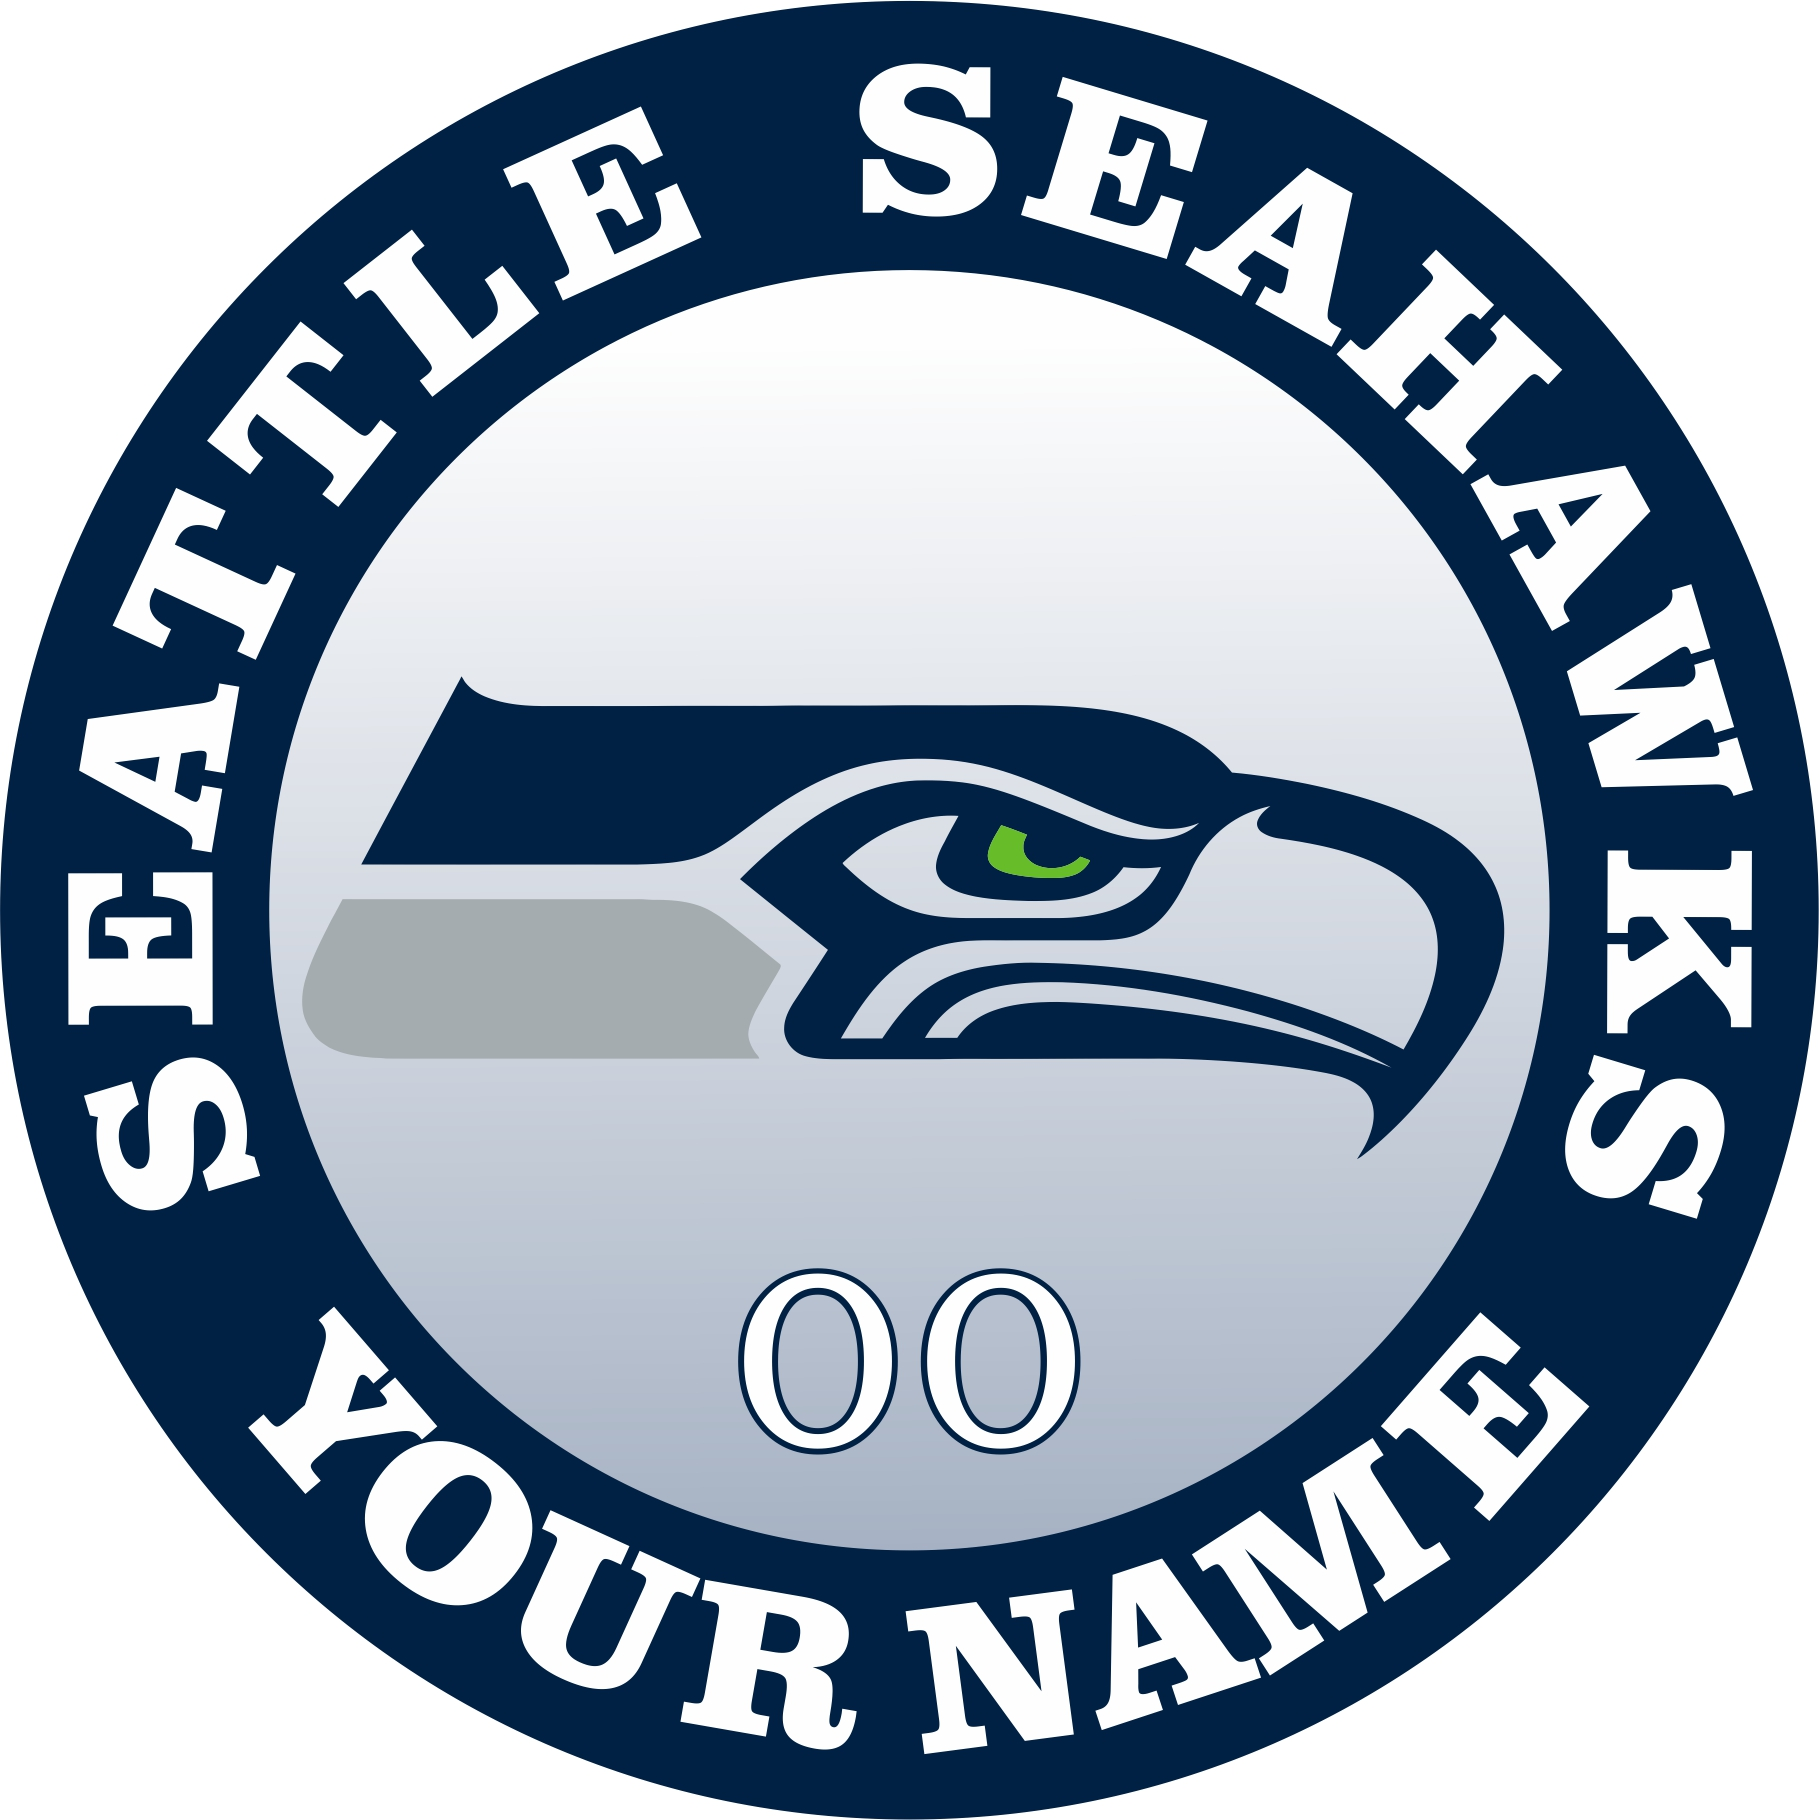 Seattle Seahawks Customized Logo iron on sticker